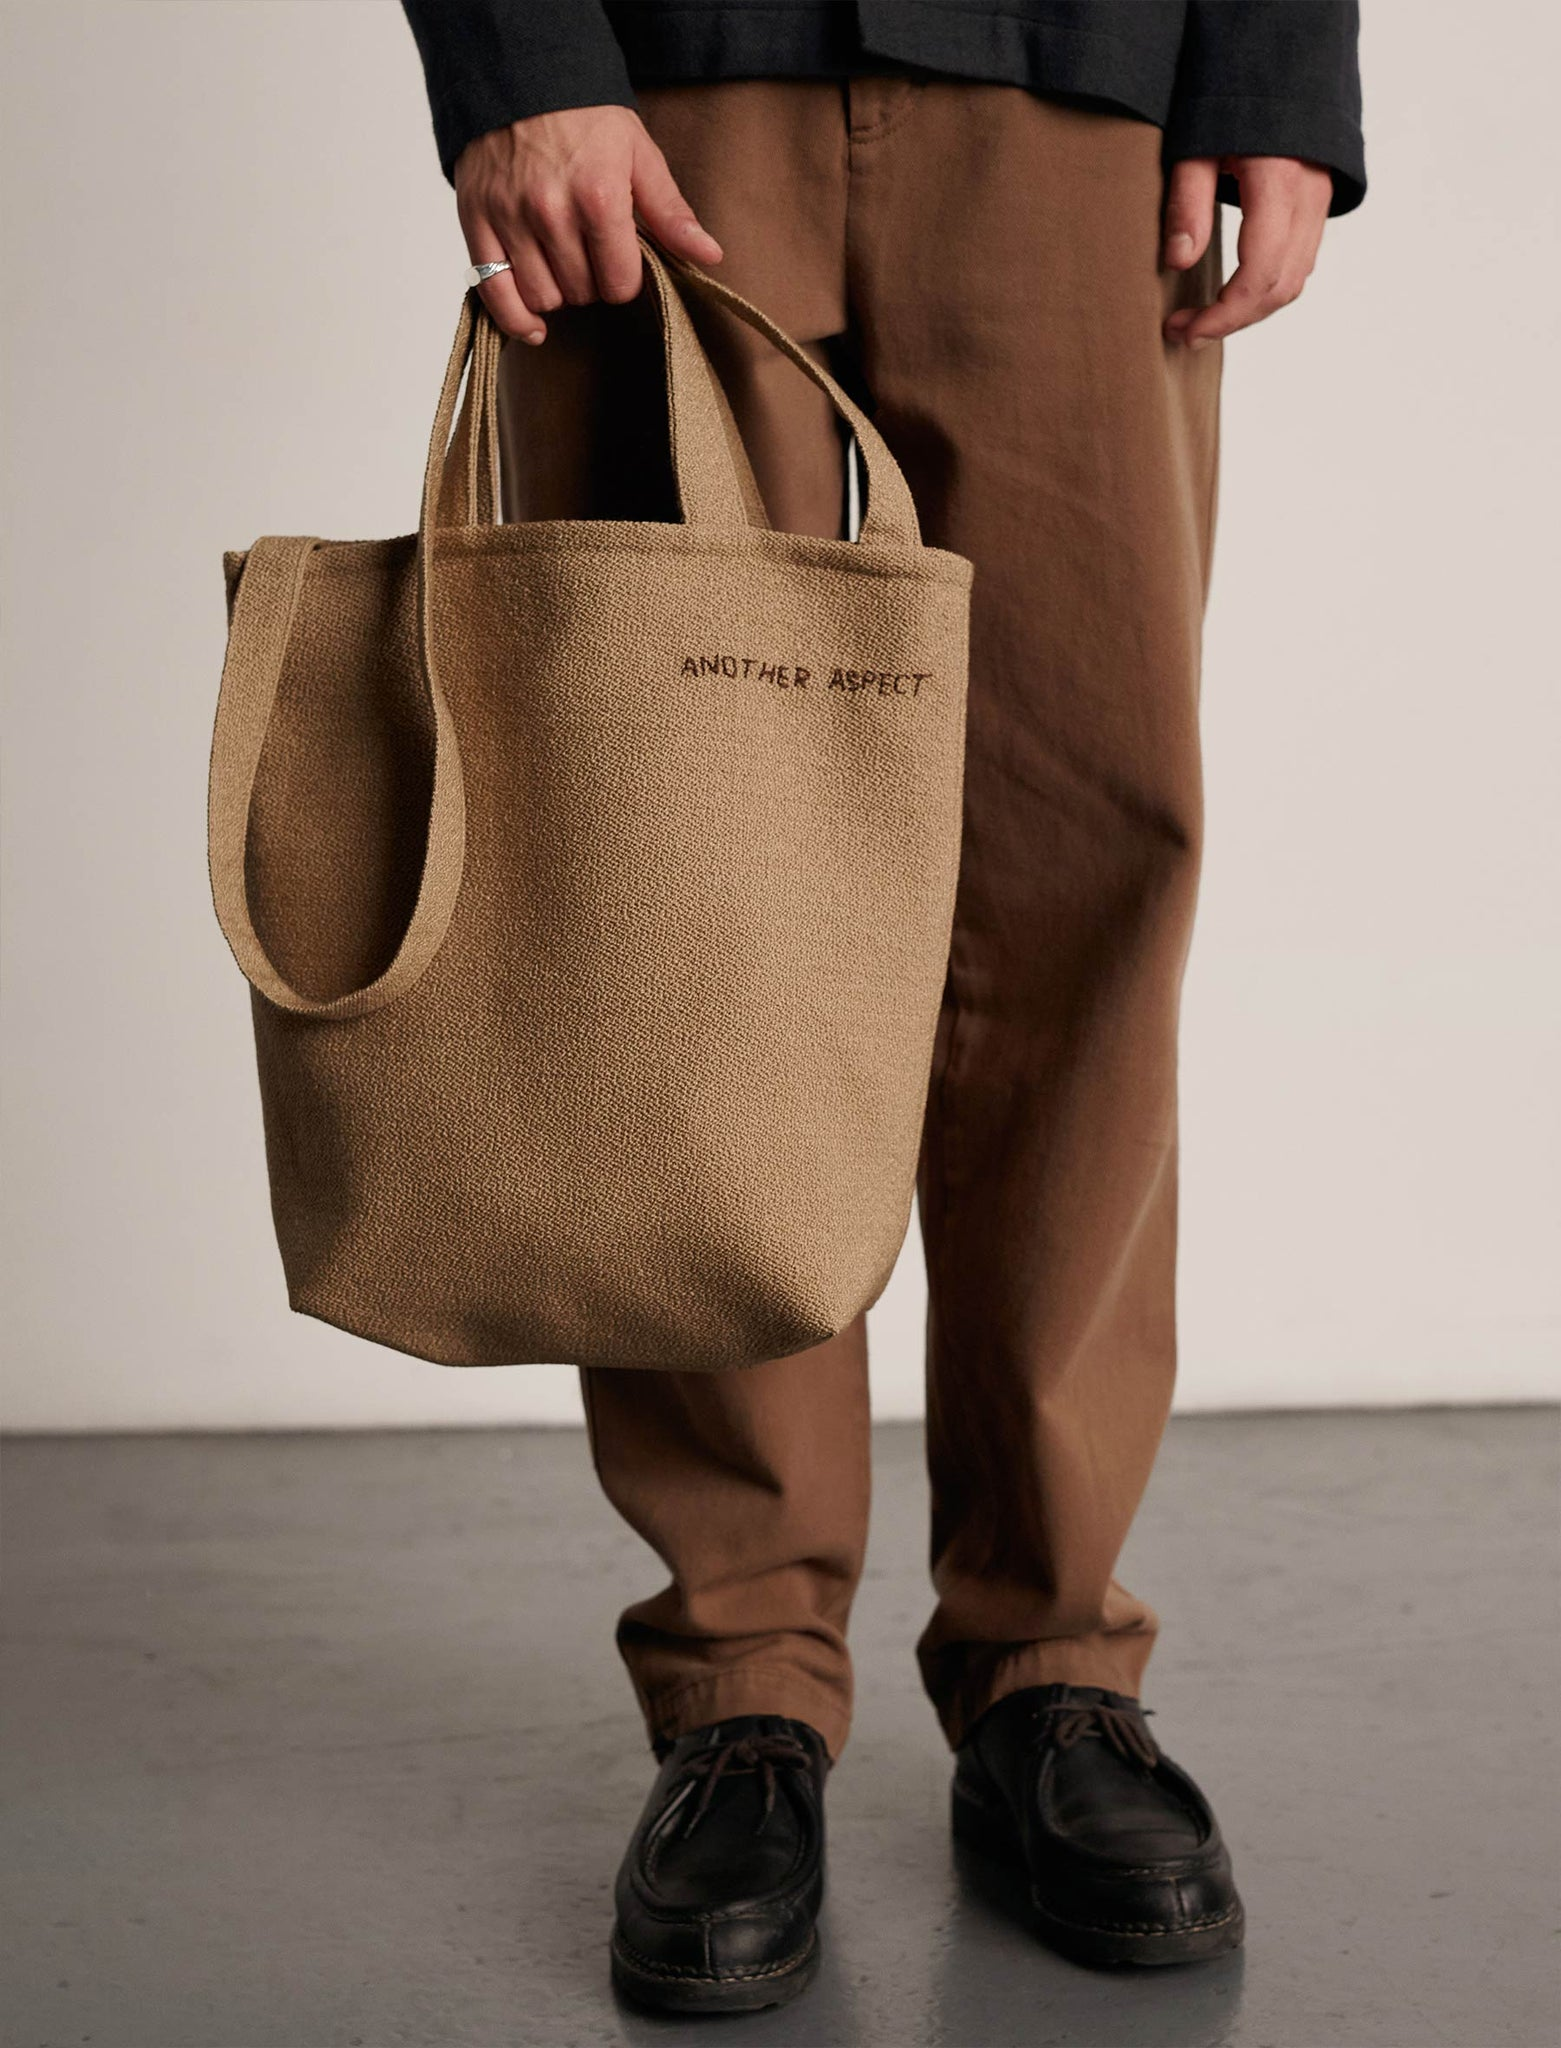 ANOTHER Tote Bag 1.0, Sand Grain